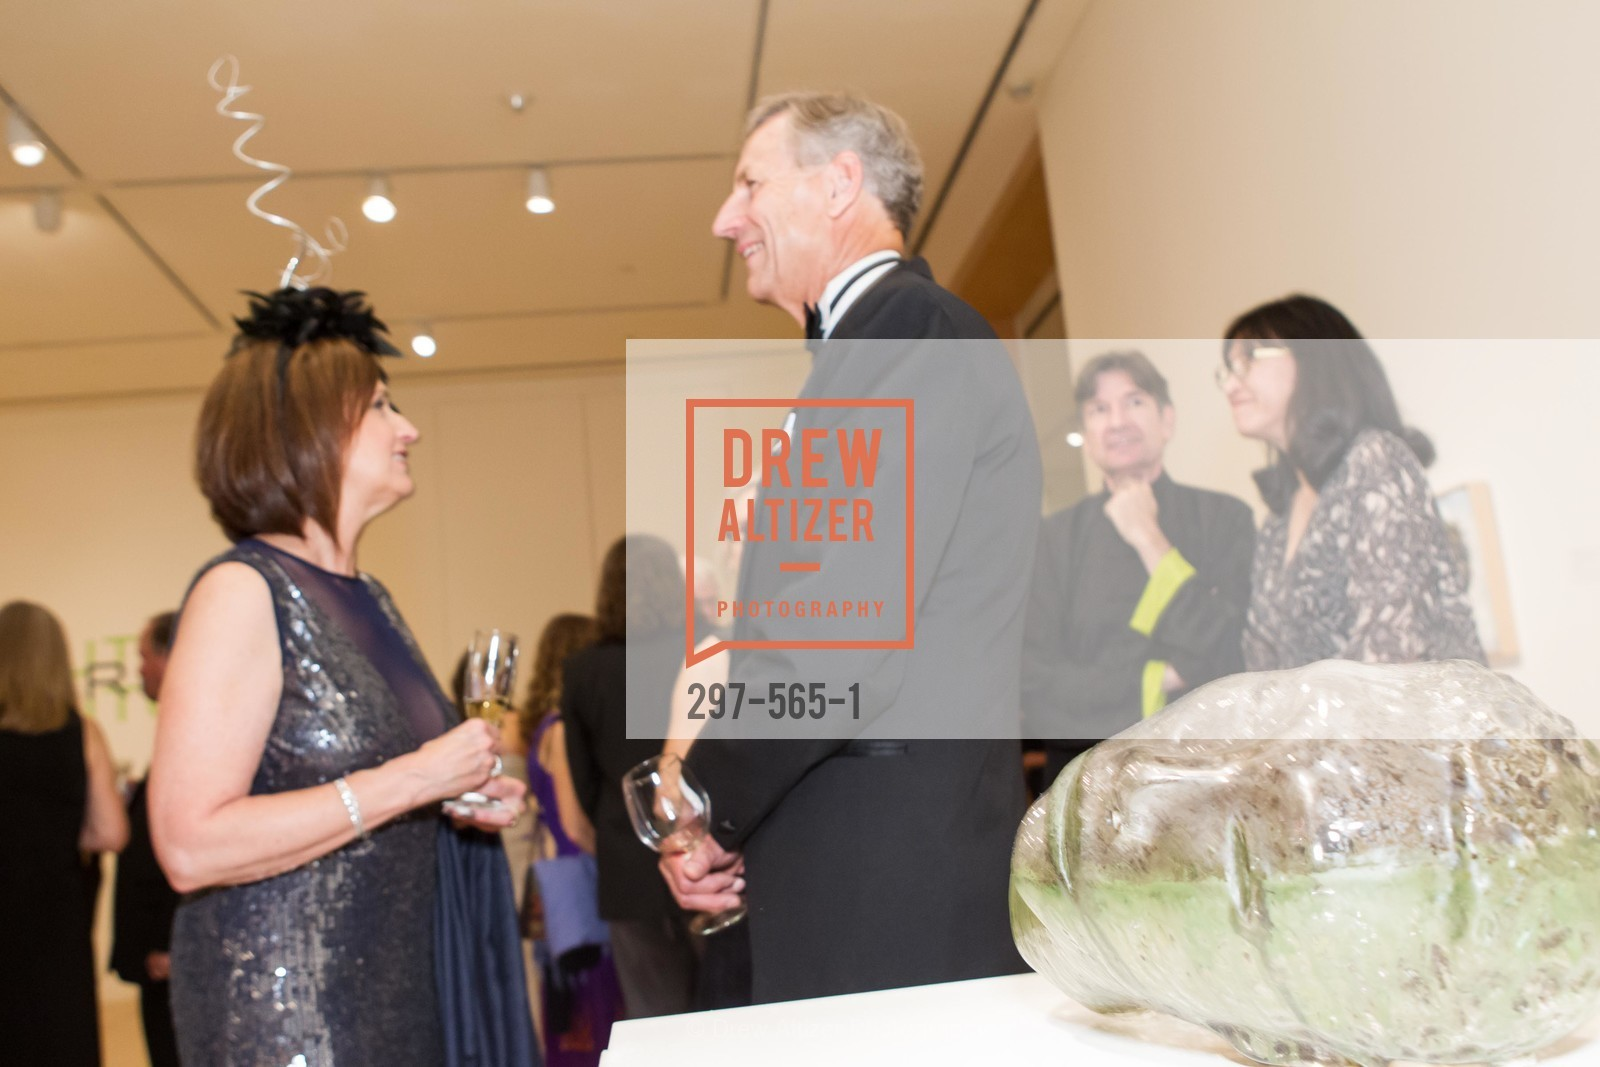 Atmosphere, GLAAD GALA Kick-Off Party Hosted by SAKS FIFTH AVENUE, Saks Fifth Avenue. 384 Post Street, September 12th, 2014,Drew Altizer, Drew Altizer Photography, full-service agency, private events, San Francisco photographer, photographer california